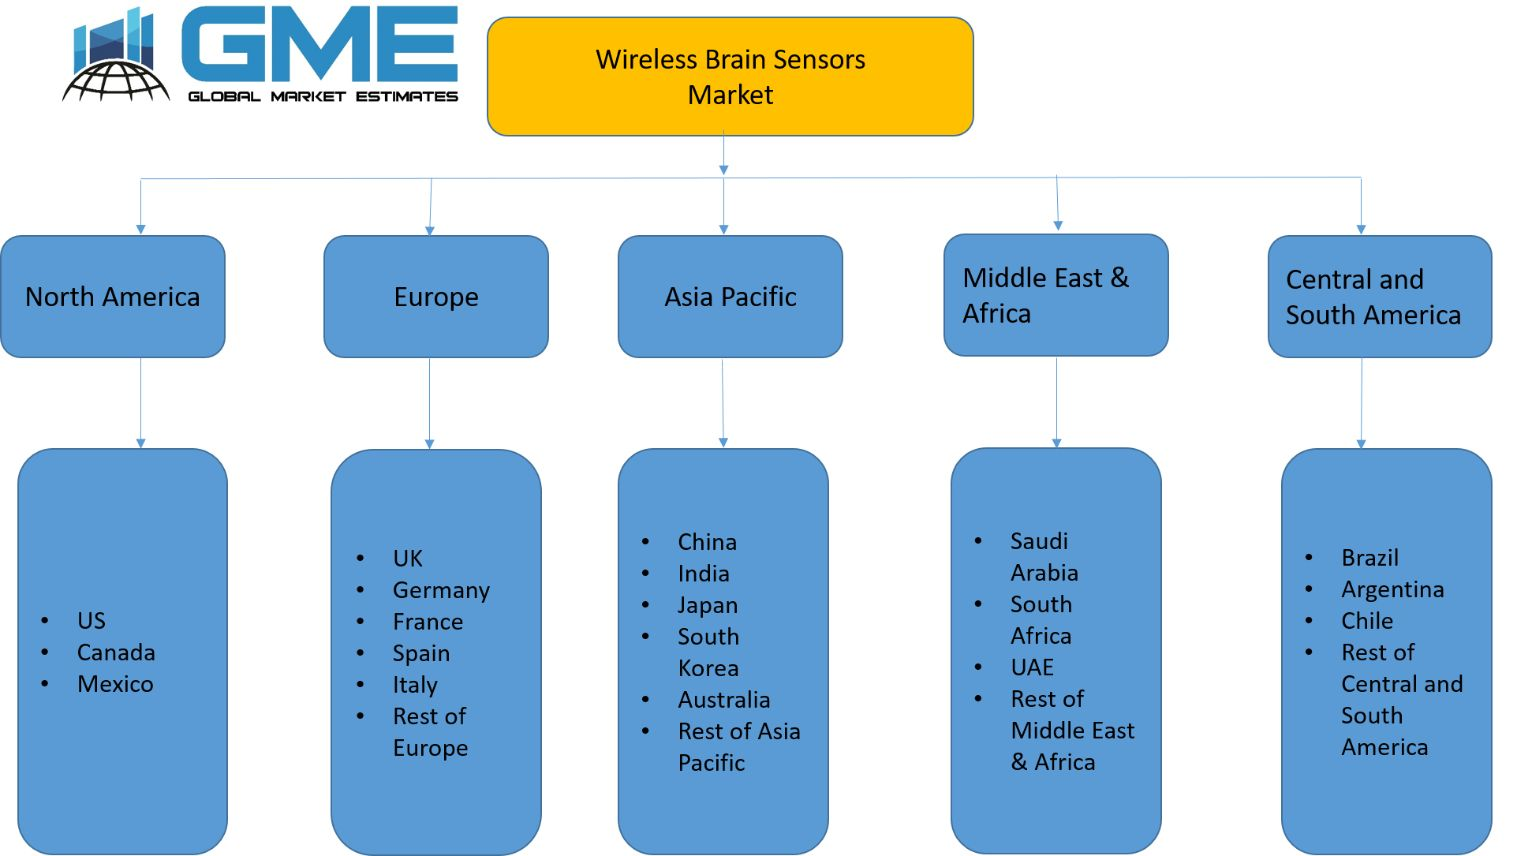 Wireless Brain Sensors Market - Regional Analysis